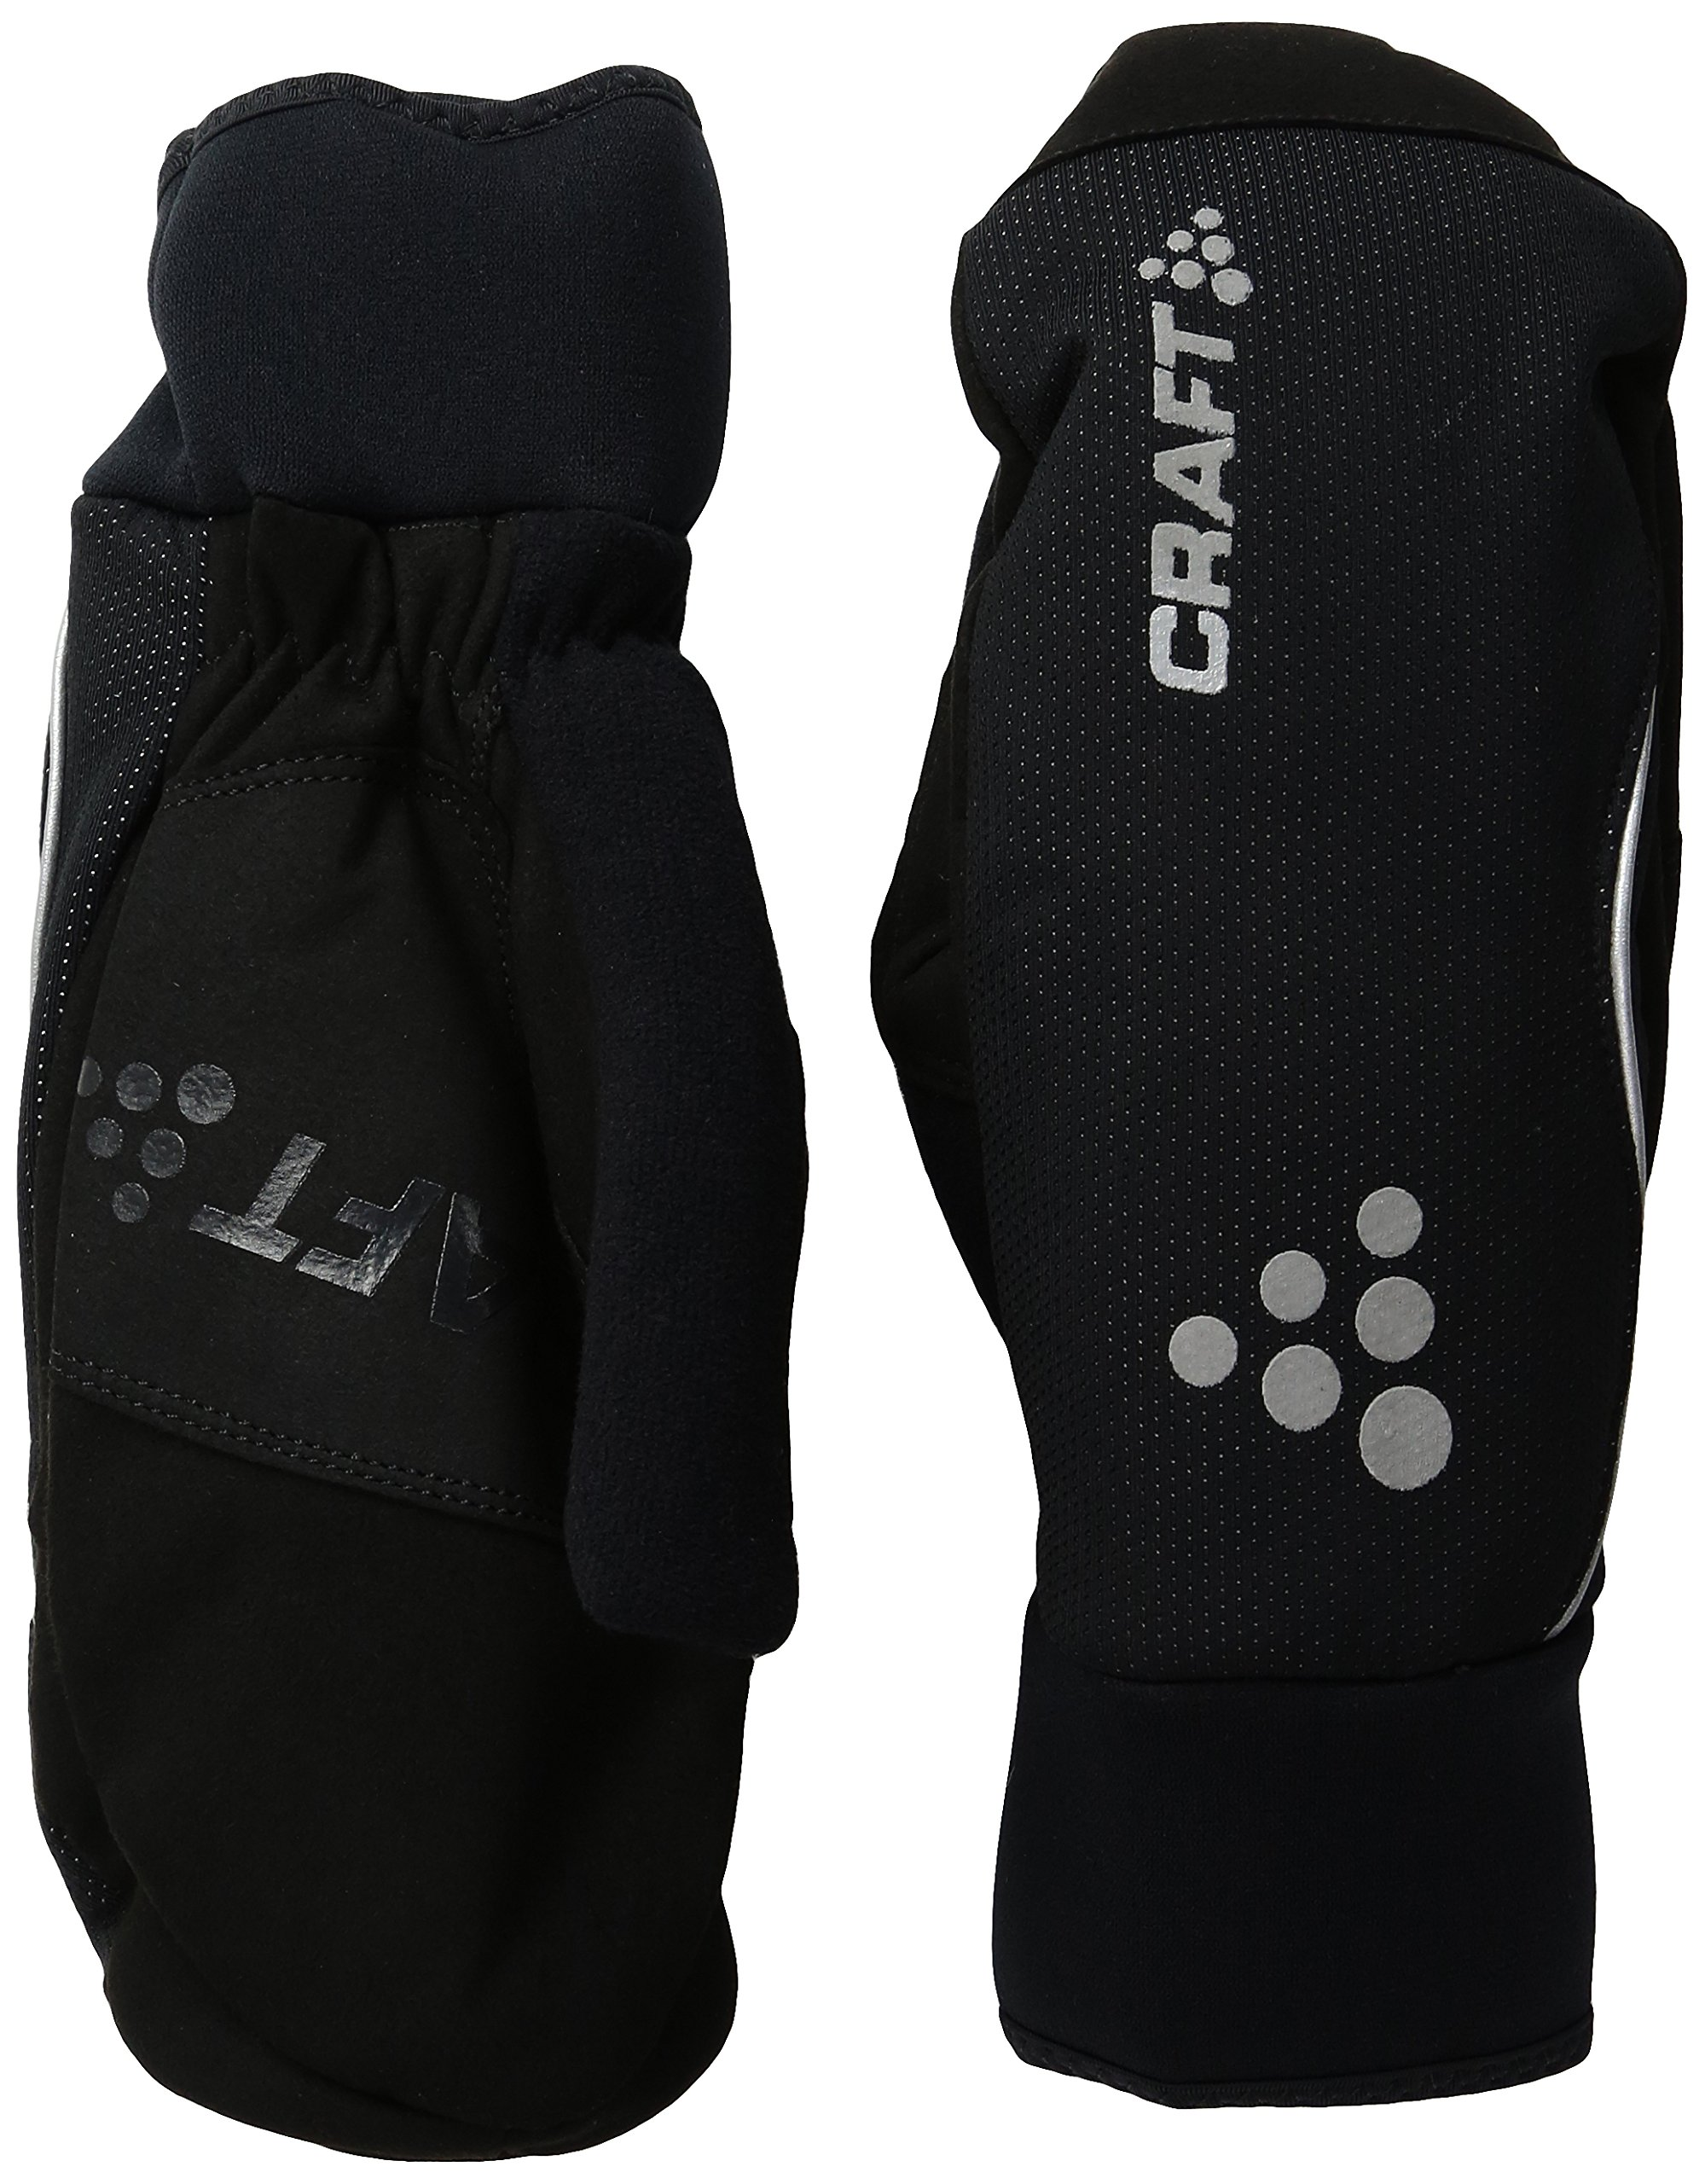 Craft Touring Insulated Bike Cycling & Training Mittens